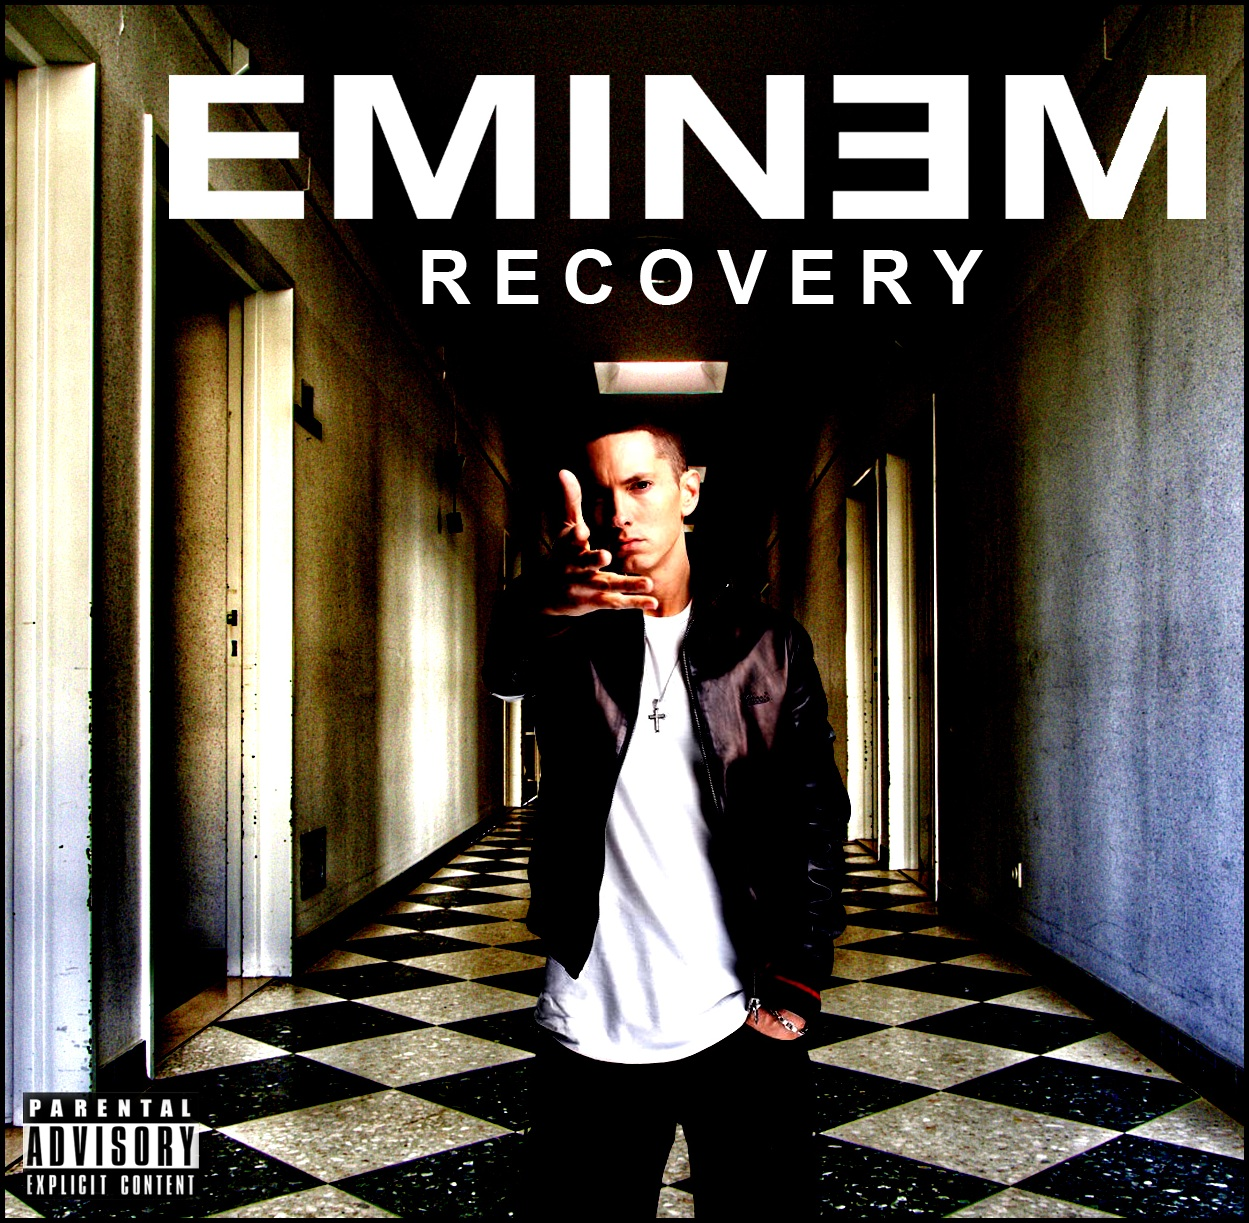 Venom By Eminem Download Song: Going Through Changes Lyrics, Mp3 & Video Song